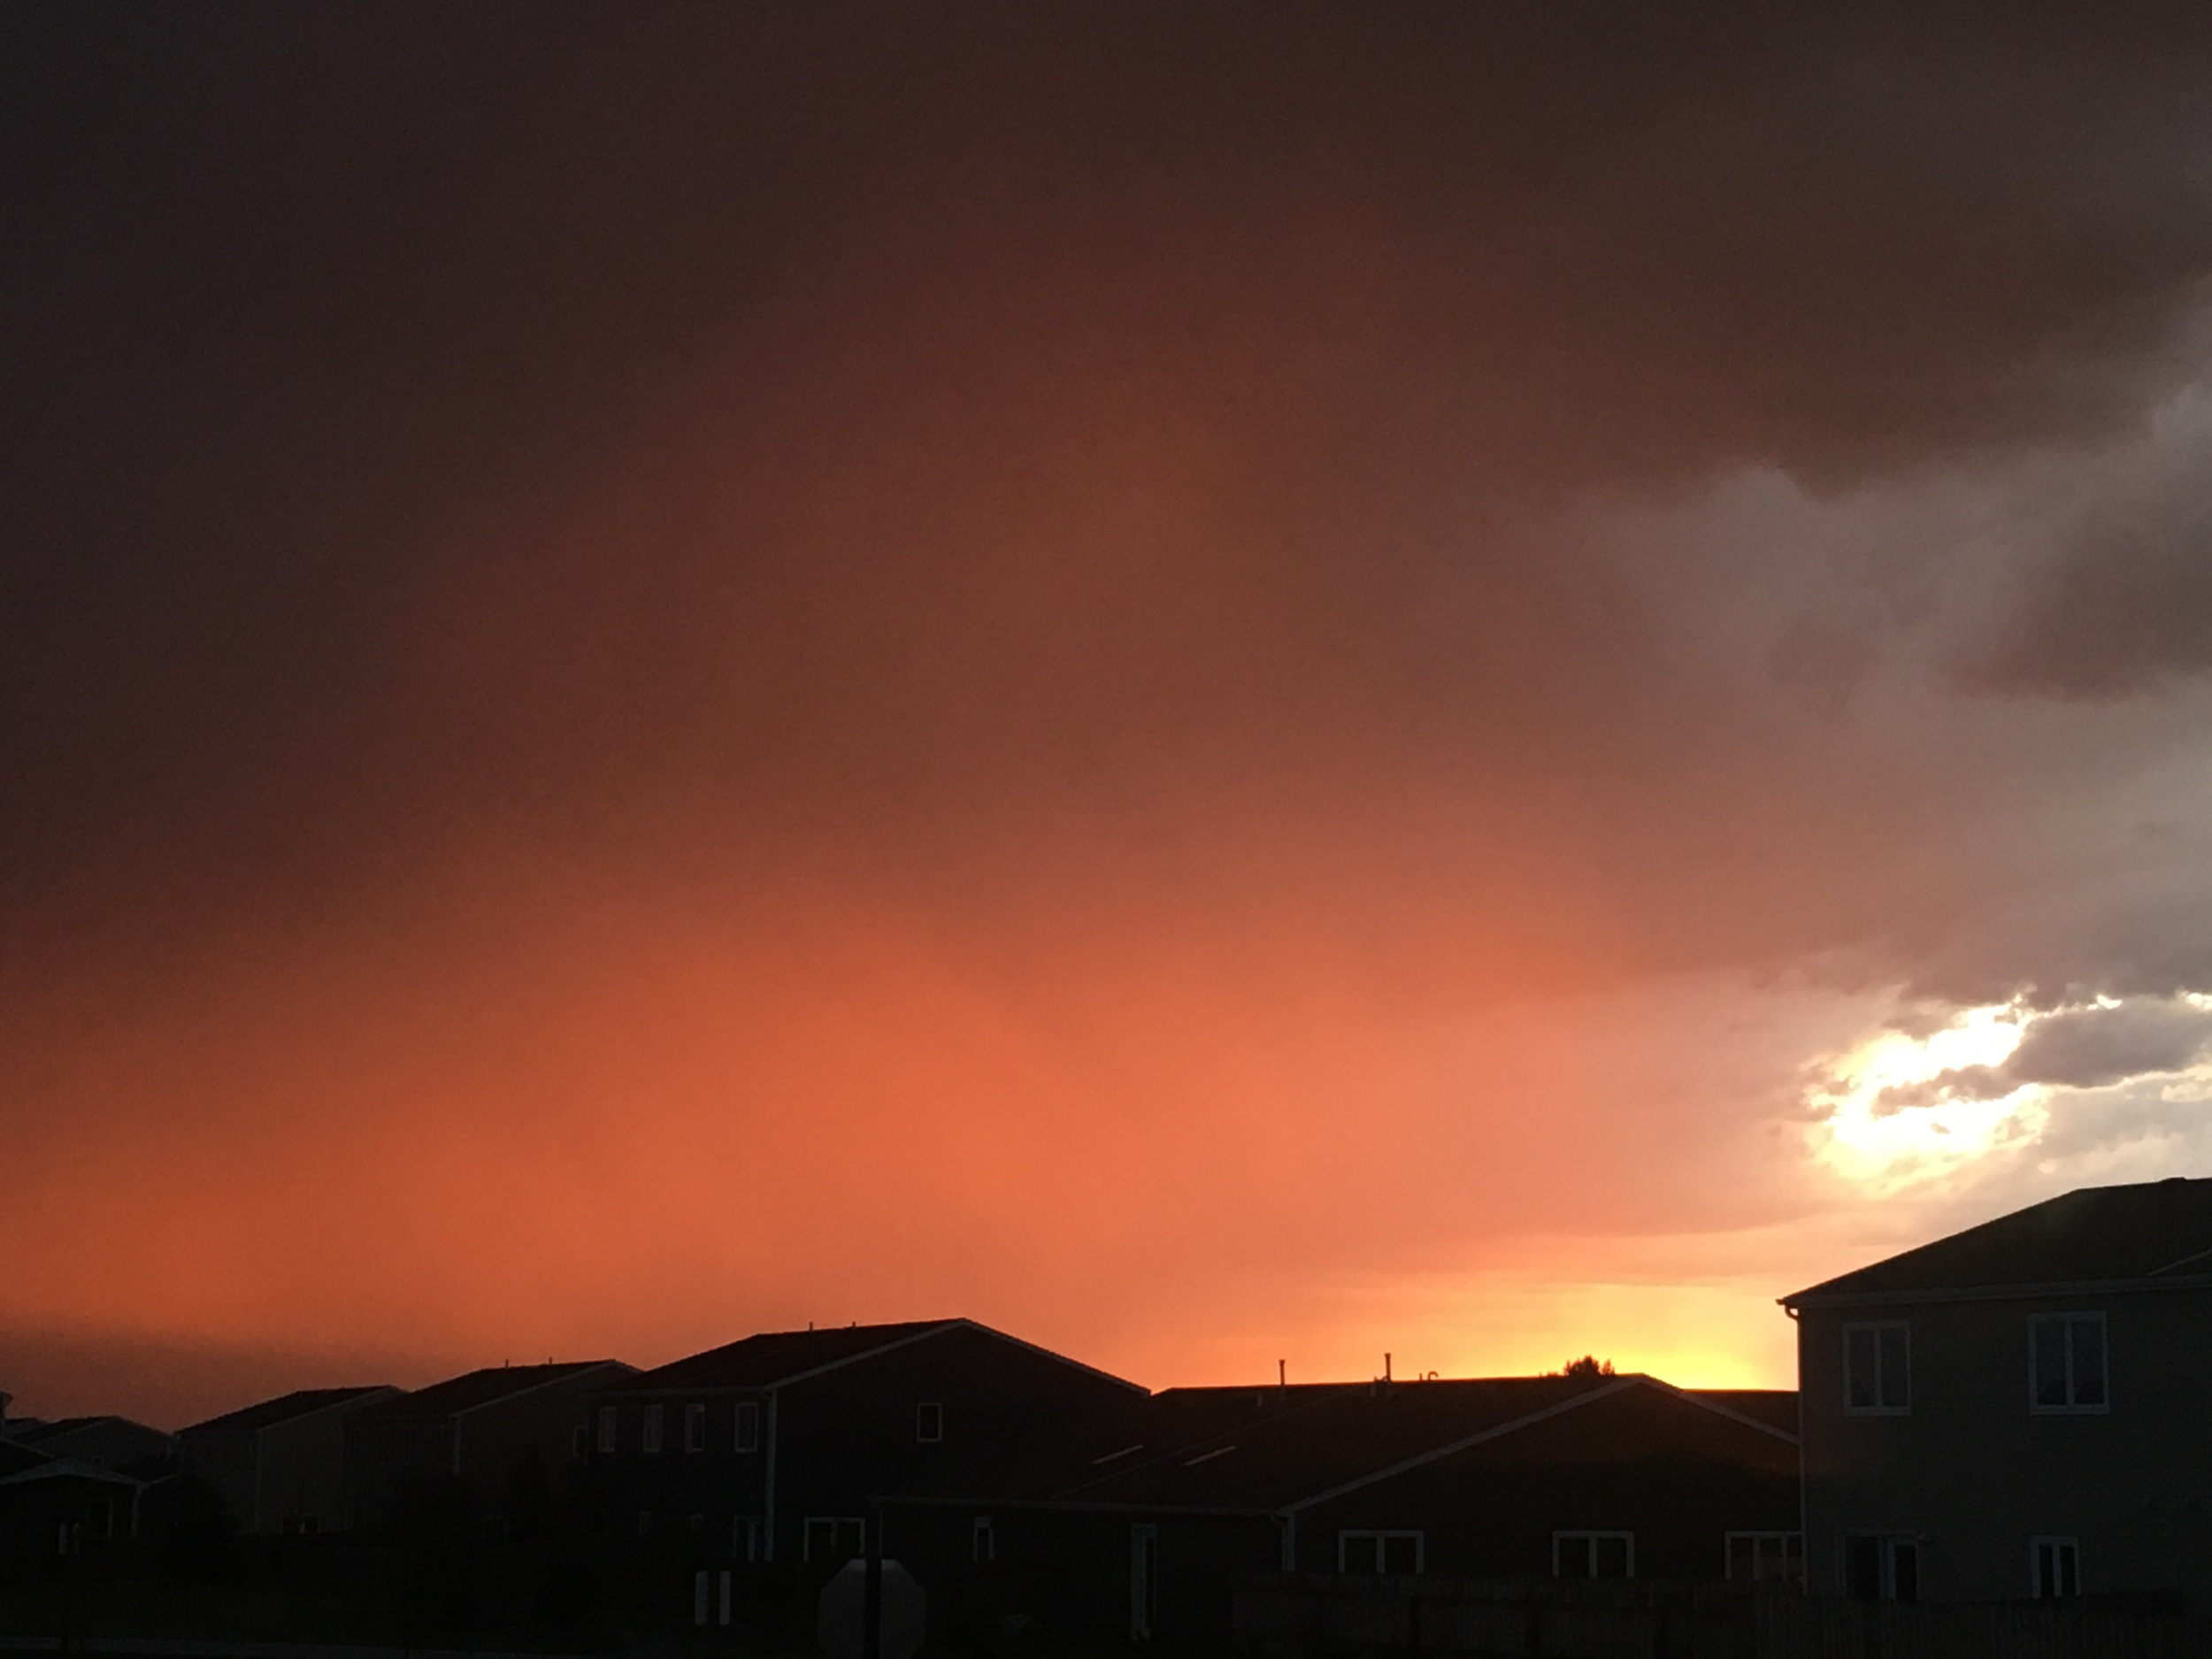 A stormy sunset in Wyoming.